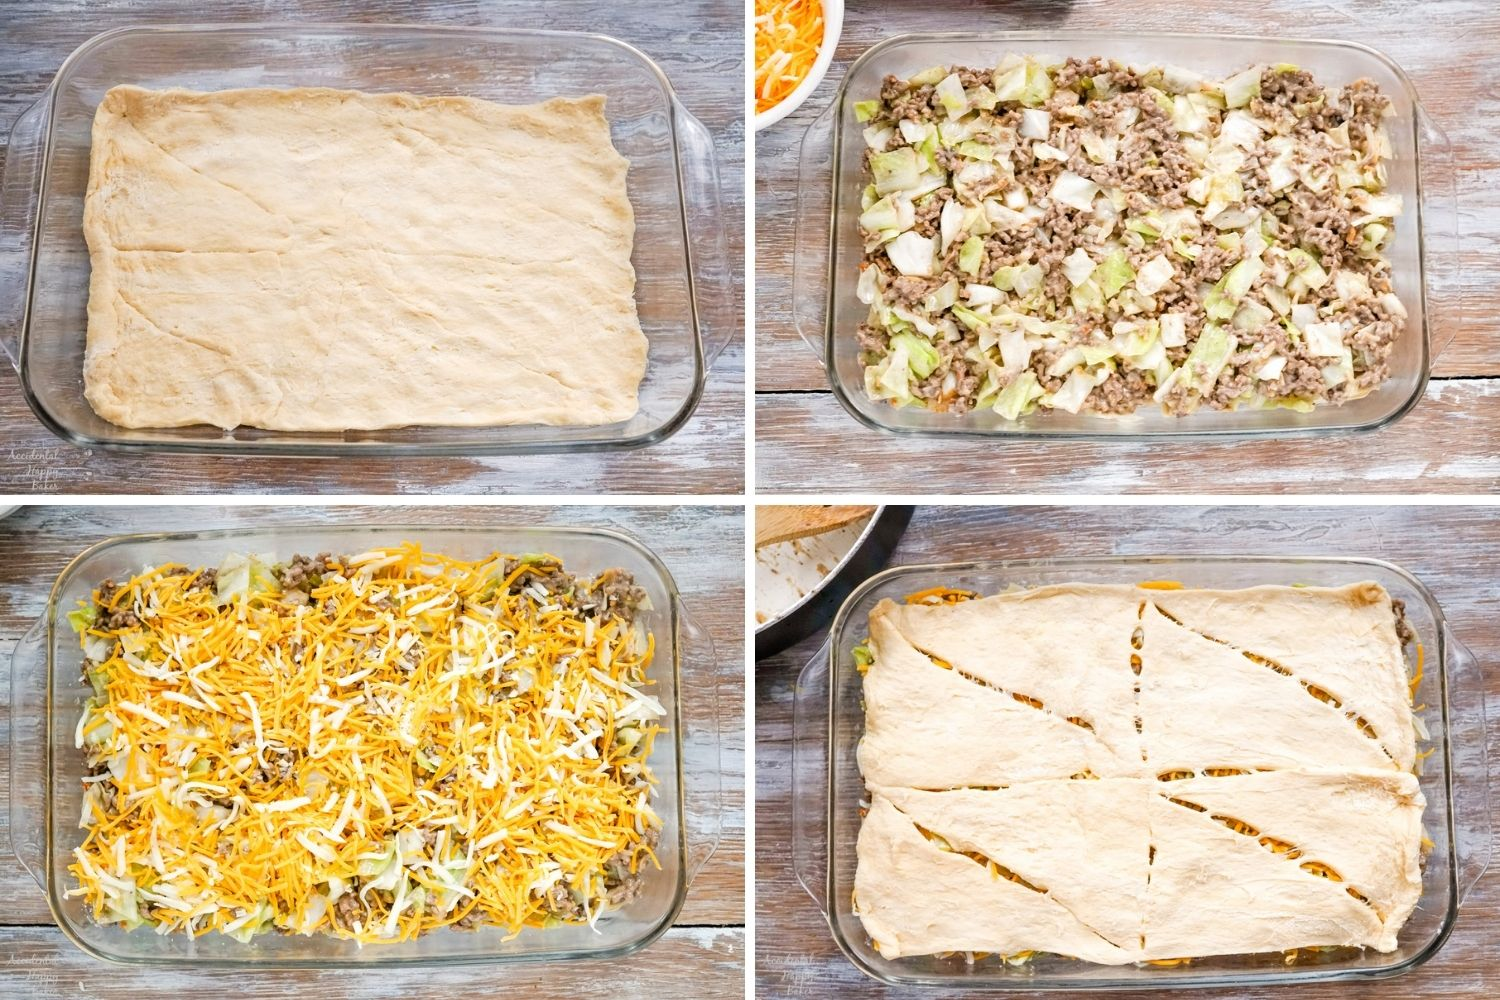 A collage image showing the steps to assemble the casserole.